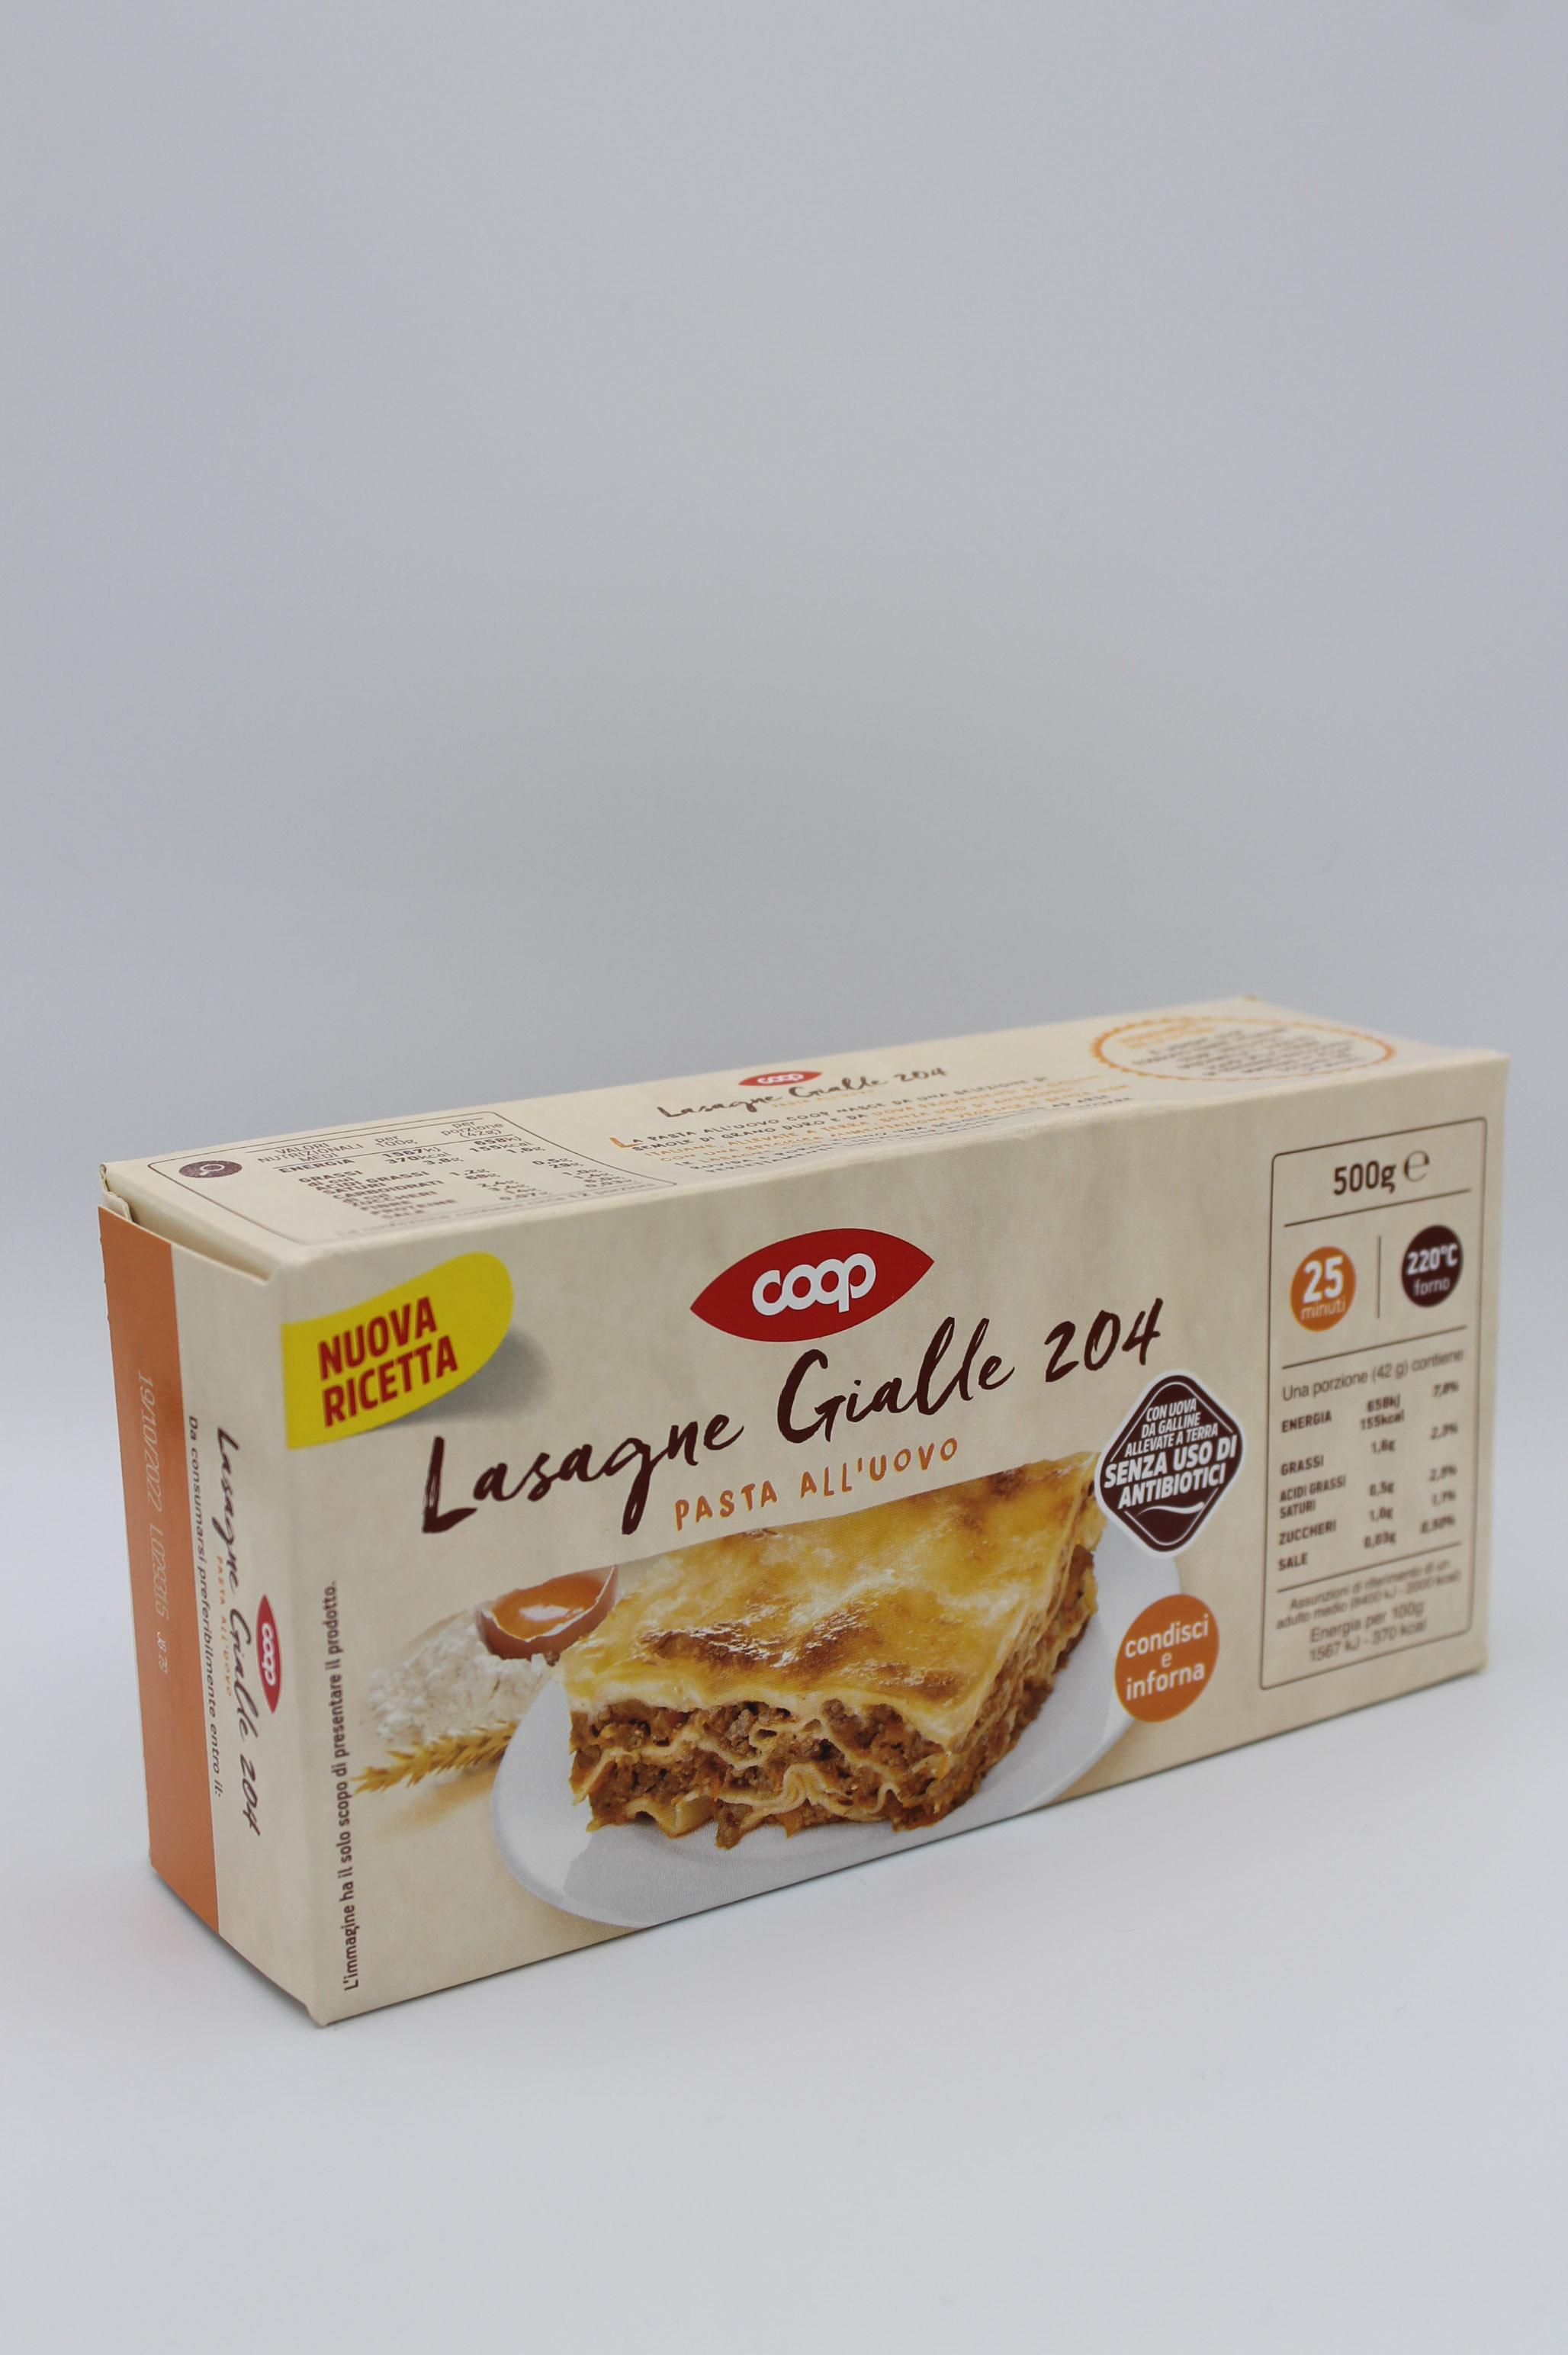 Coop lasagne gialle all' uovo 500gr.